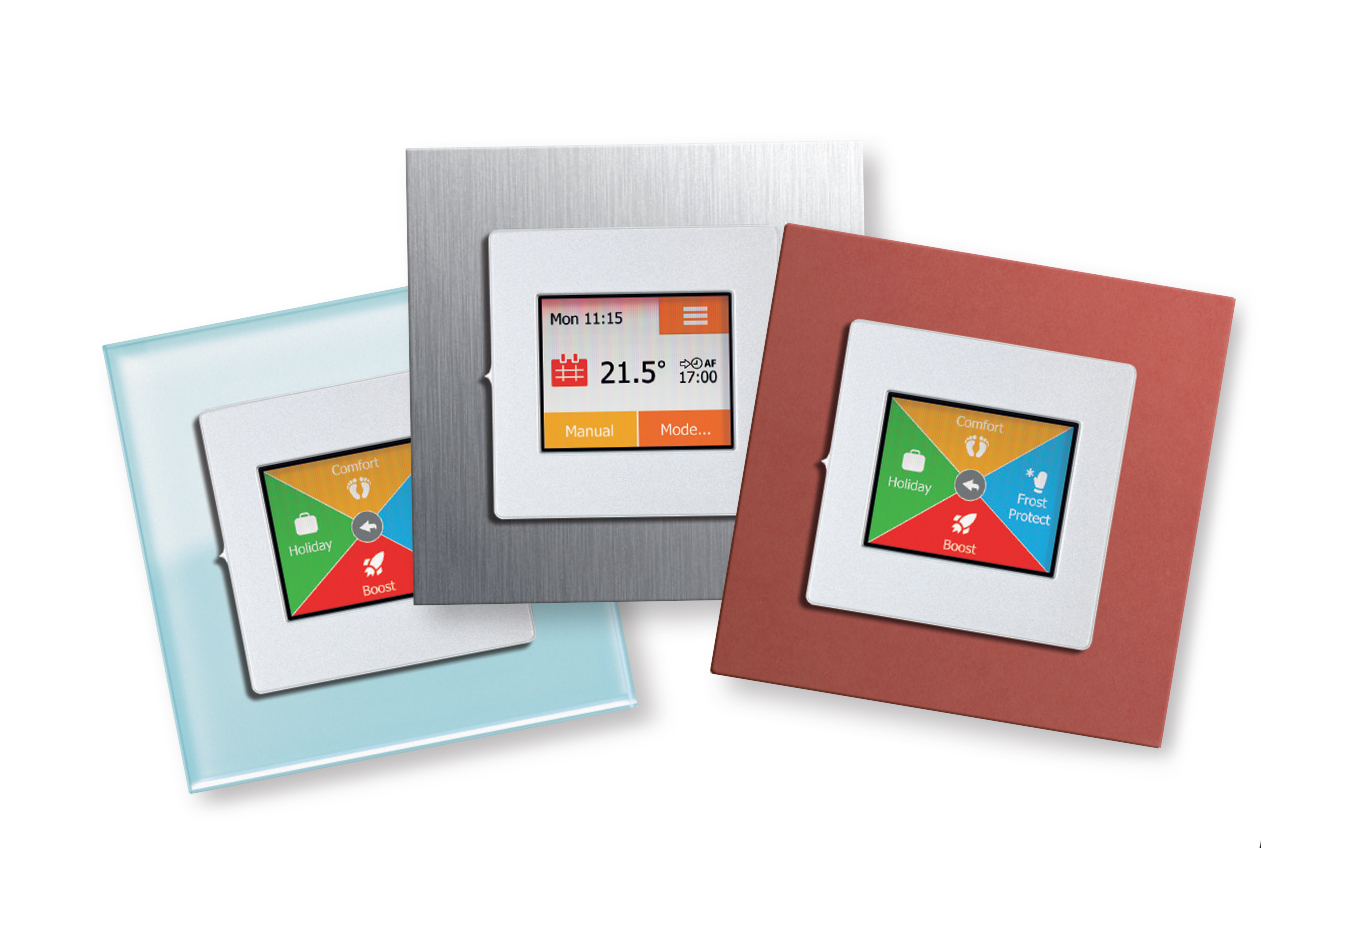 Group of Heat Mat NGTouch thermostats with premium frames